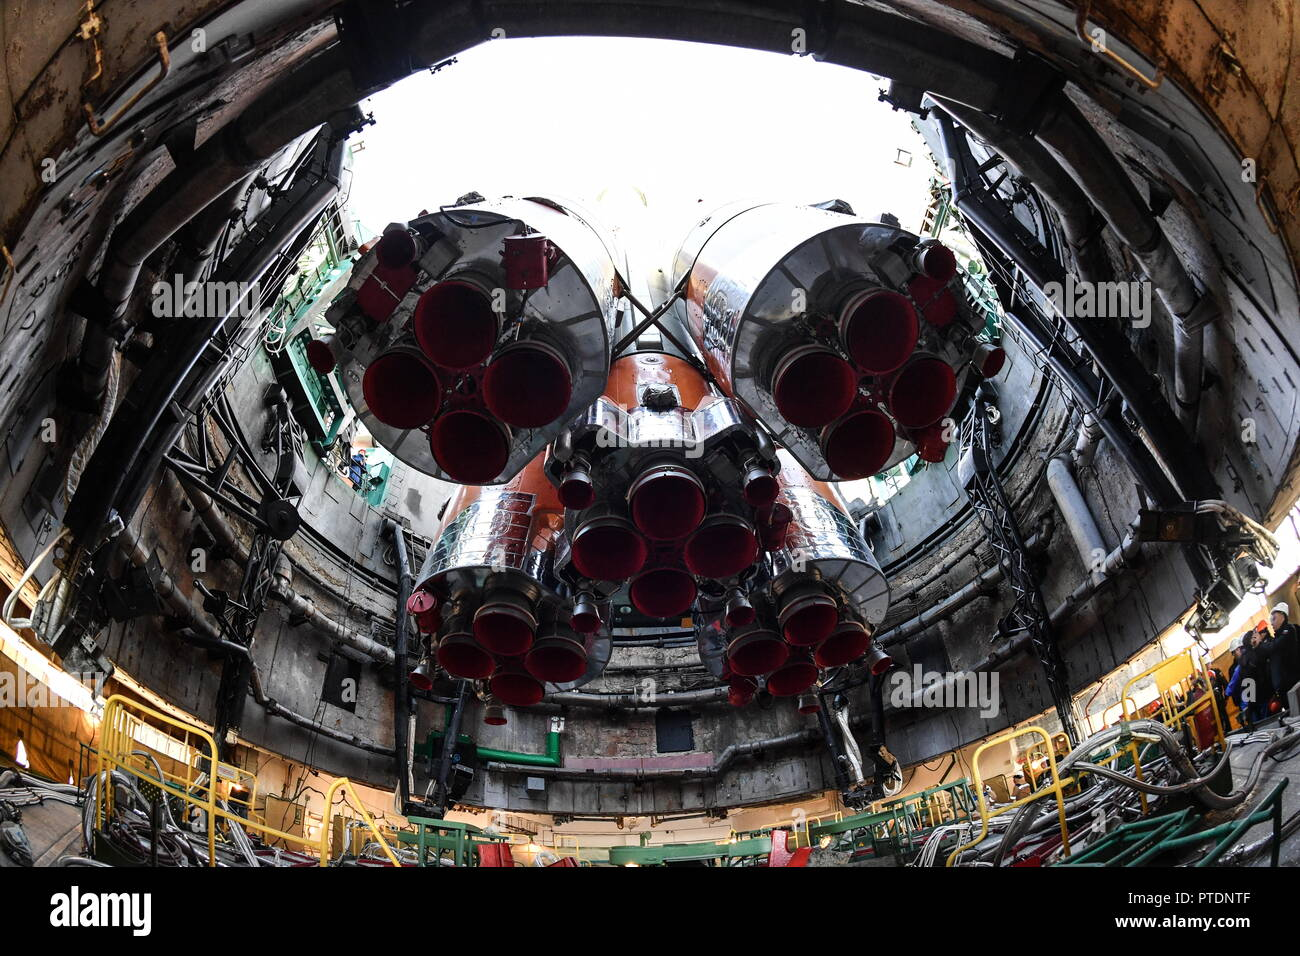 Kazakhstan. 09th Oct, 2018. KAZAKHSTAN - OCTOBER 9, 2018: Transporting a Soyuz-FG rocket booster with the Soyuz MS-10 spacecraft to a launch pad at the Baikonur Cosmodrome, the spacecraft scheduled to launch to the International Space Station (ISS) on October 11, 2018, at 11:40 am Moscow time, with Roscosmos cosmonaut Alexei Ovchinin and NASA astronaut Nick Hague of ISS Expedition 57/58 aboard. Alexei Filippov/RIA Novosti/POOL/TASS Credit: ITAR-TASS News Agency/Alamy Live News - Stock Image